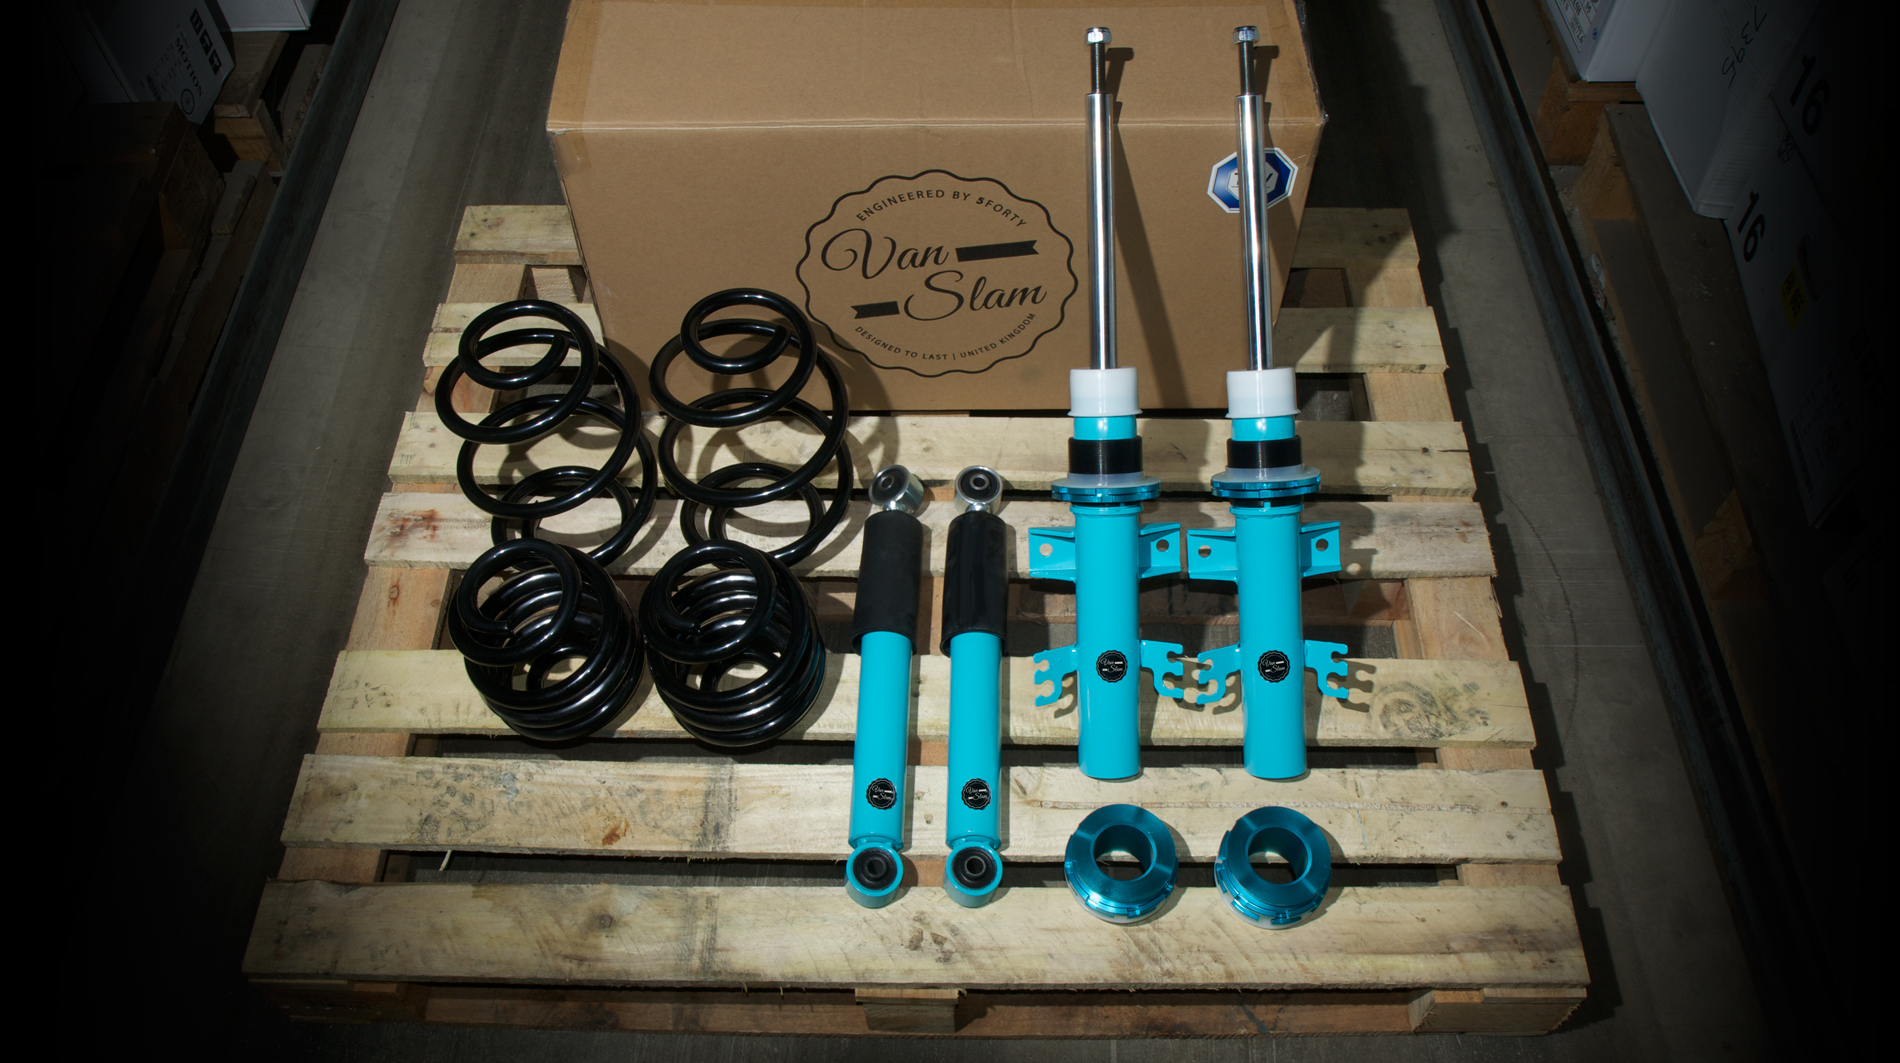 Vanslam van coilover suspension